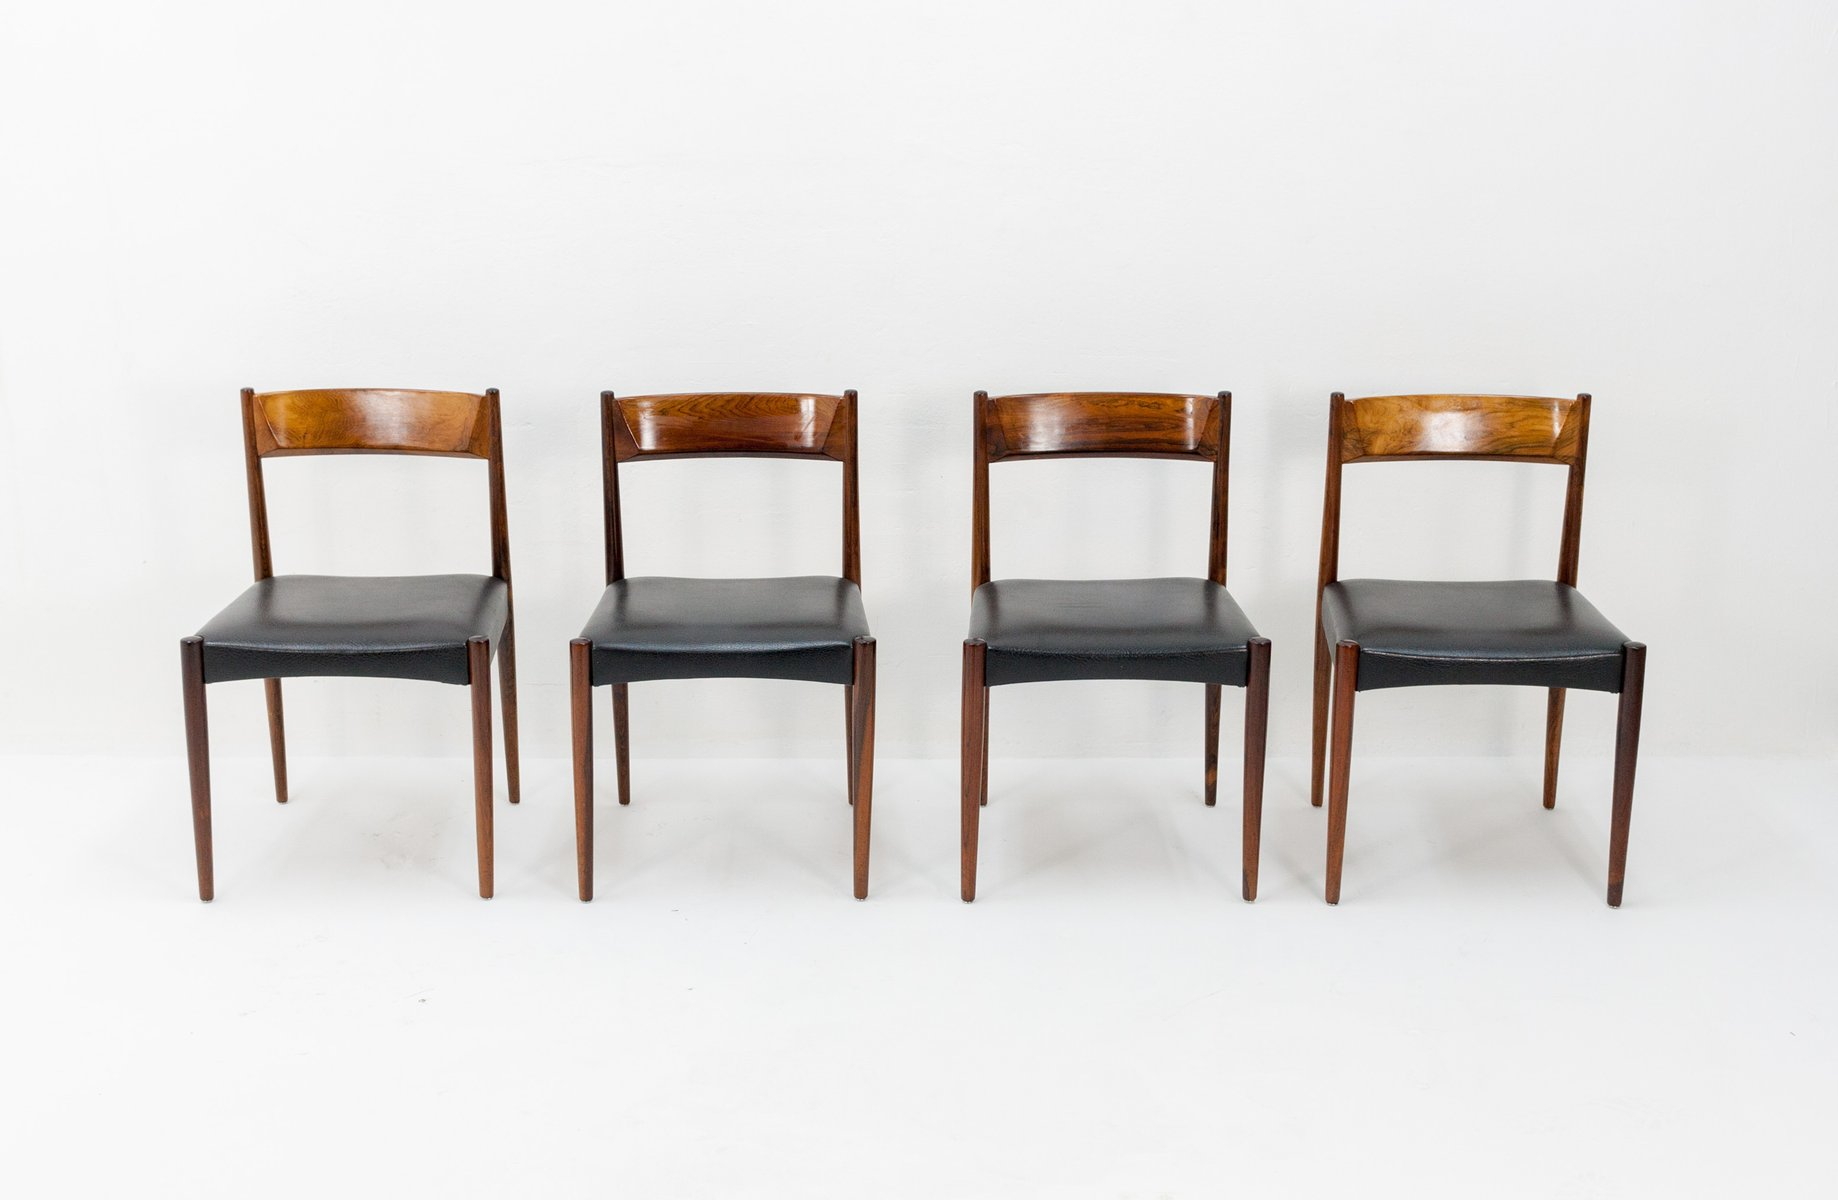 Rosewood and black leather dining chairs from lübke 1960s set of 4